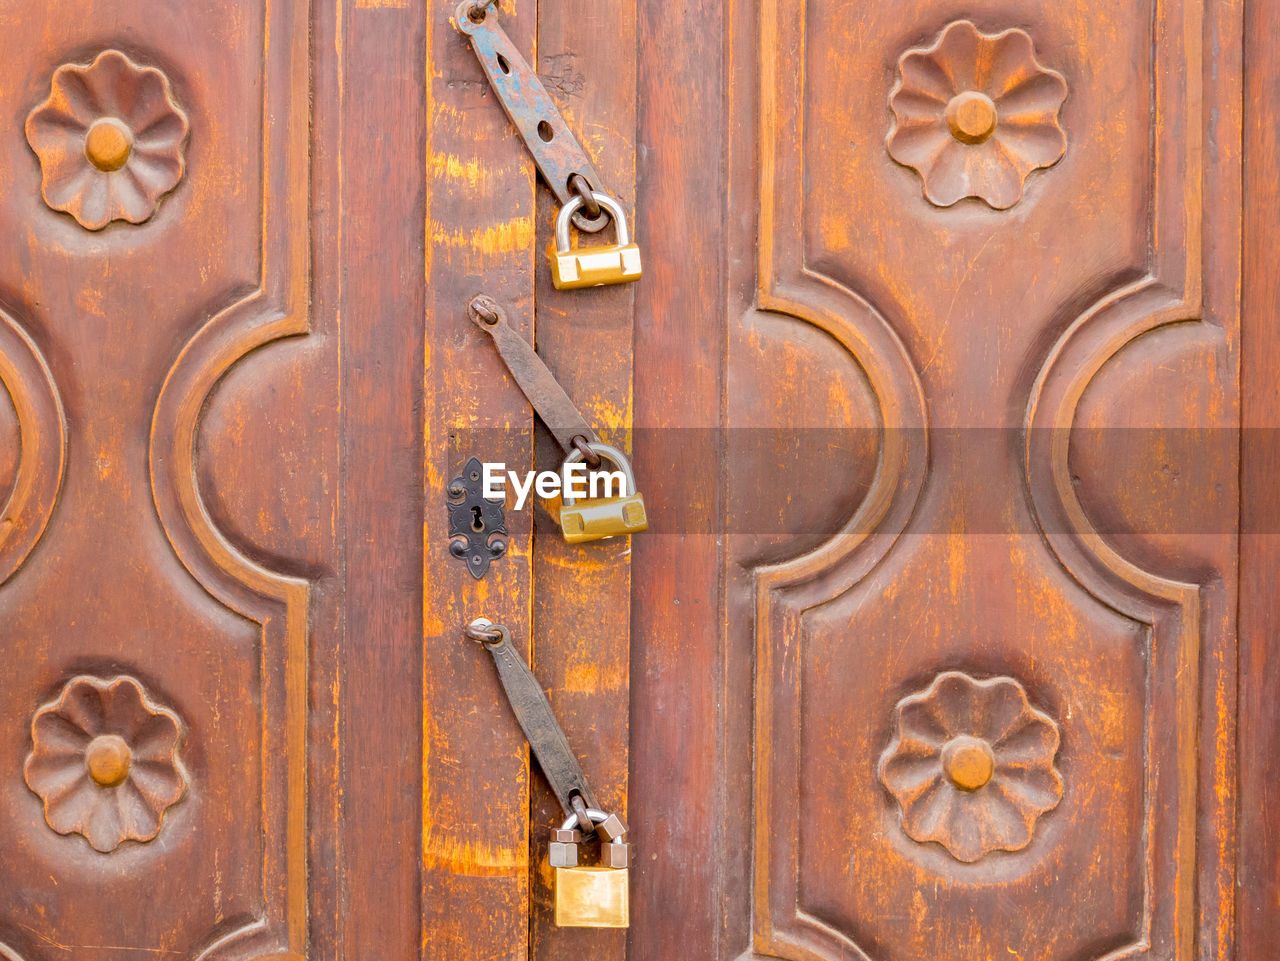 entrance, door, wood - material, old, close-up, full frame, brown, no people, safety, protection, lock, metal, doorknob, security, day, backgrounds, closed, weathered, handle, wood, ornate, antique